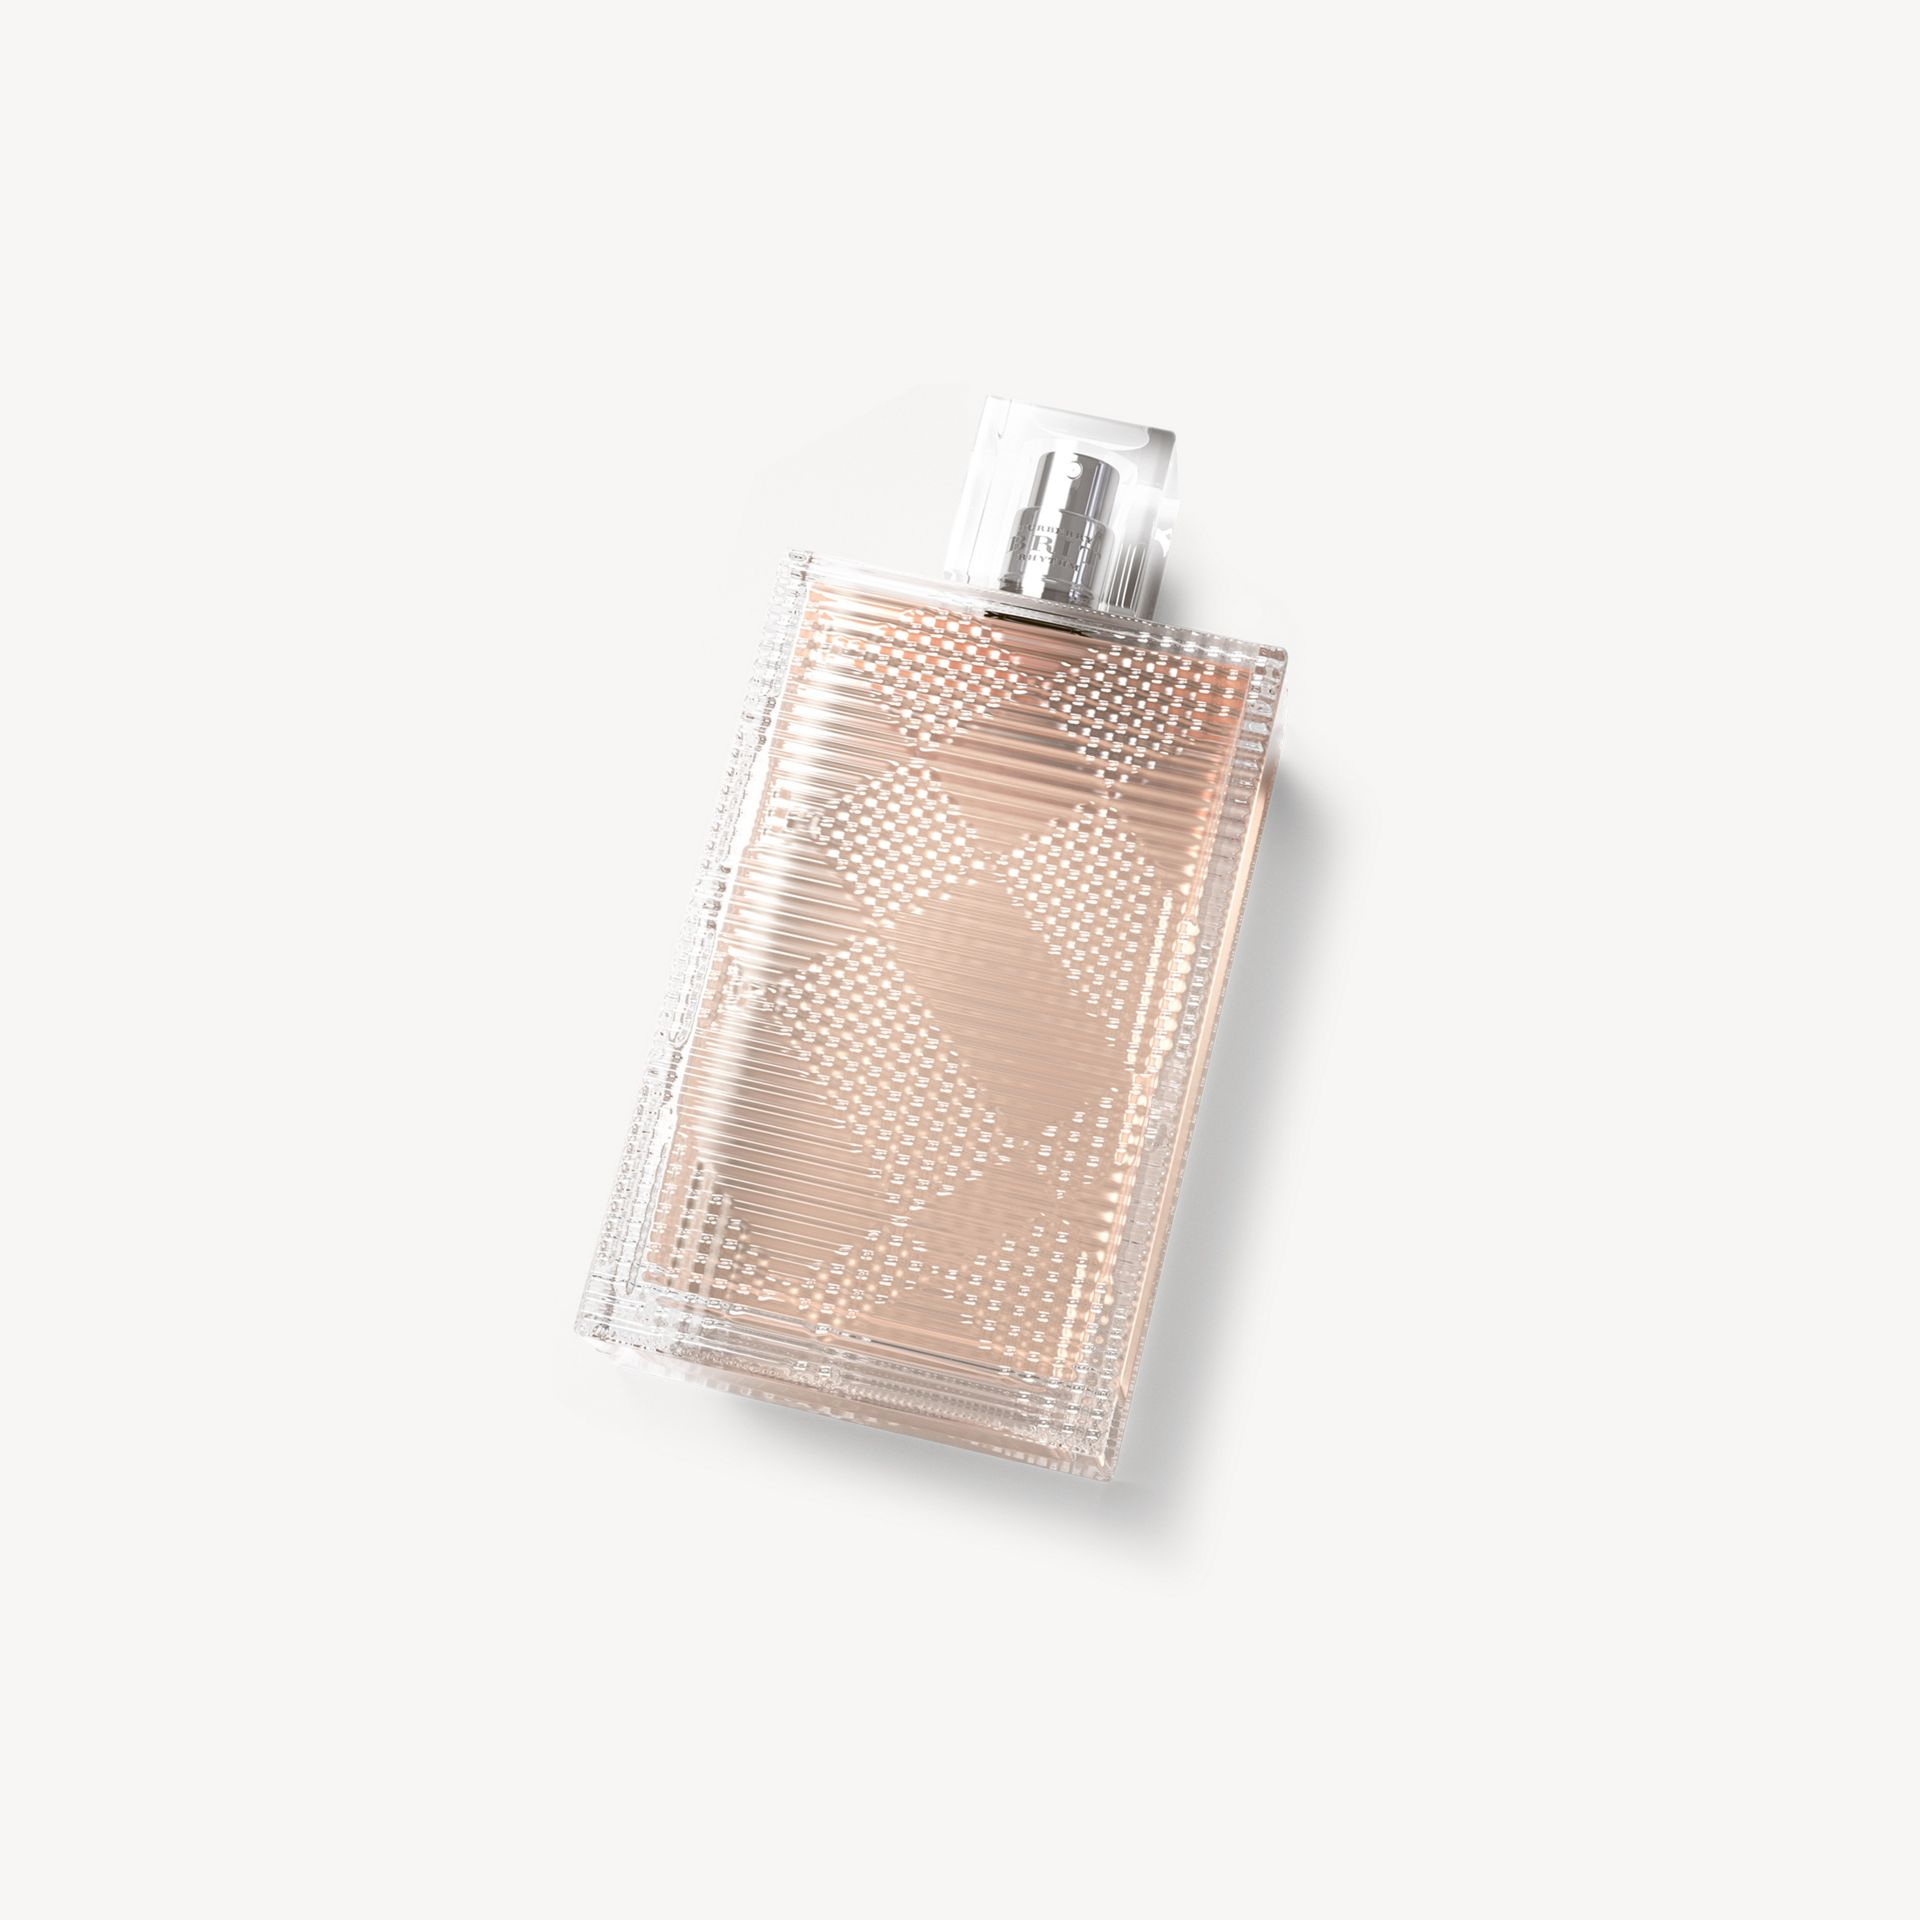 Burberry Brit Rhythm 淡香水 90ml - 圖庫照片 1